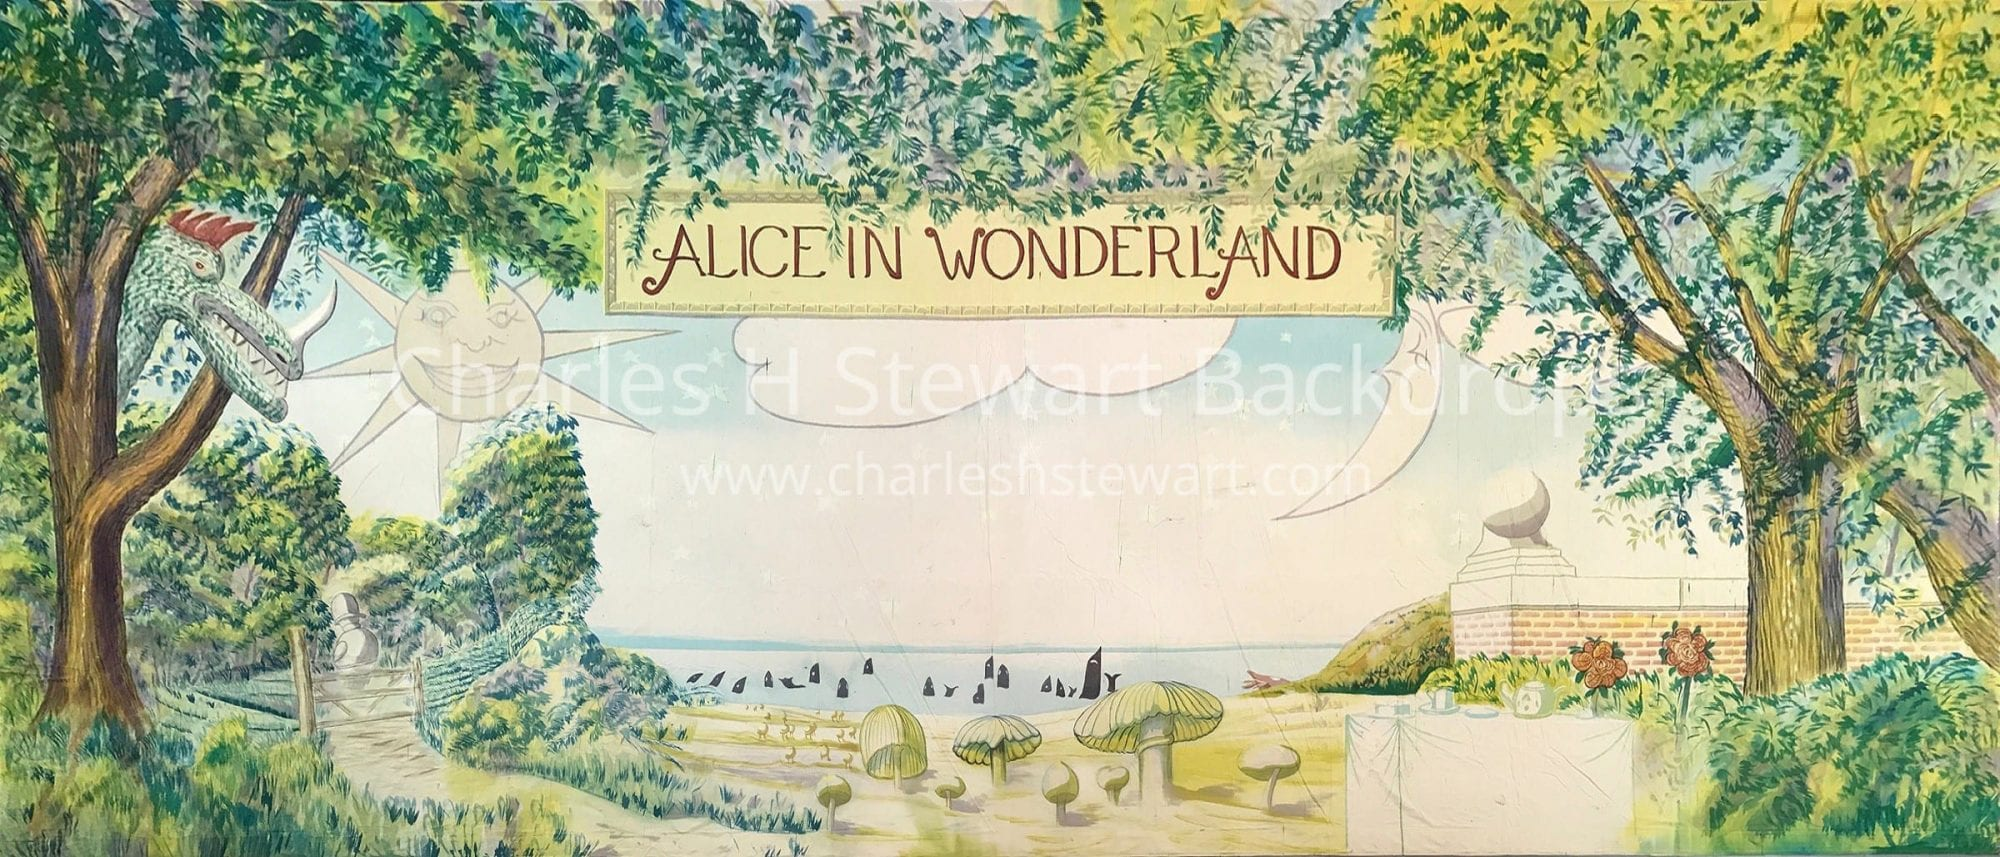 Alice In Wonderland Show Backdrop Backdrops By Charles H Stewart